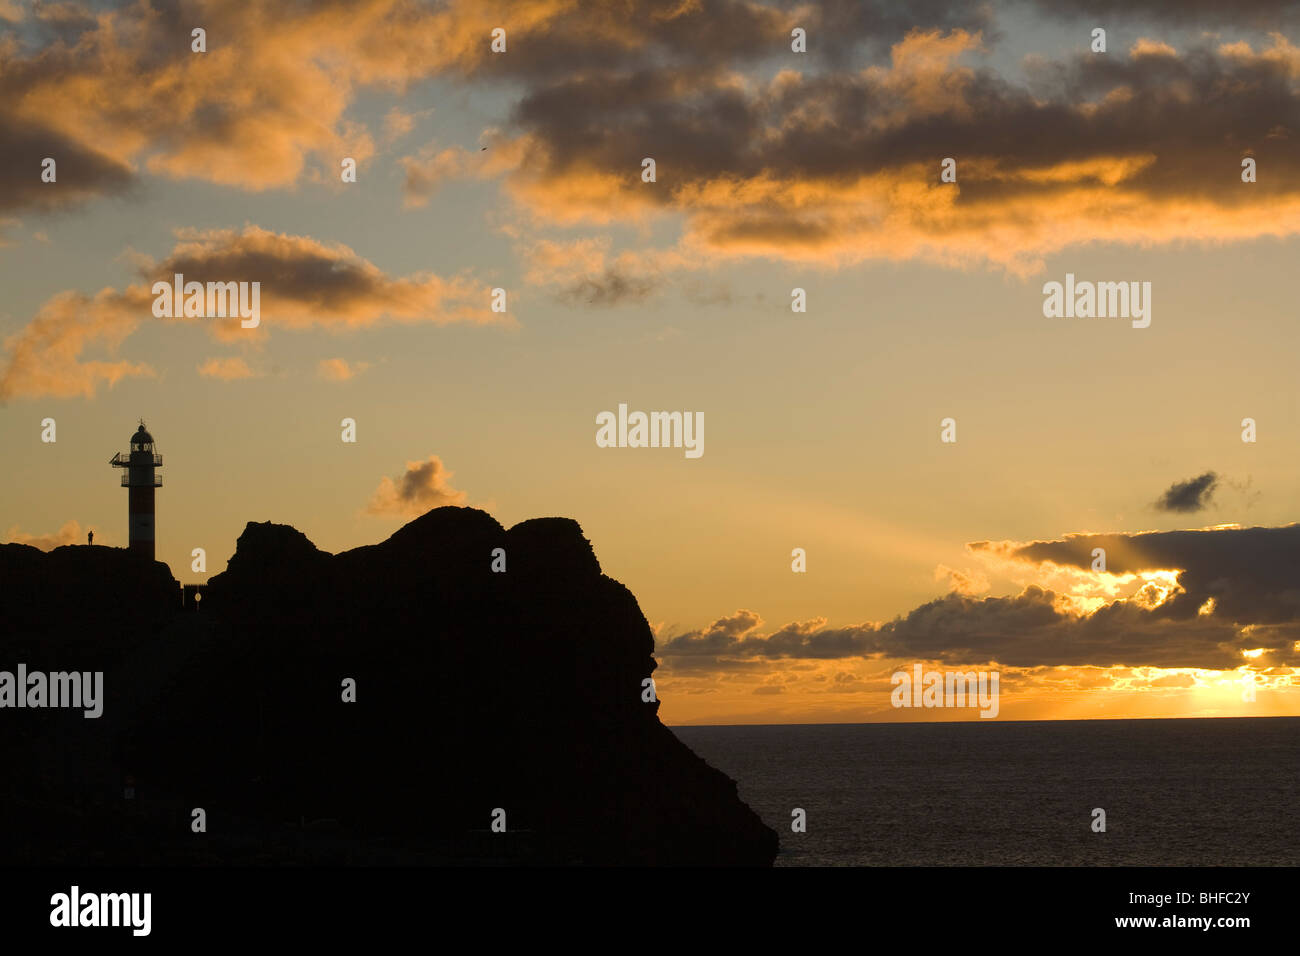 Lighthouse at the viewpoint Punta de Teno at sunset, Parque rural de Teno, Tenerife, Canary Islands, Spain, Europe - Stock Image